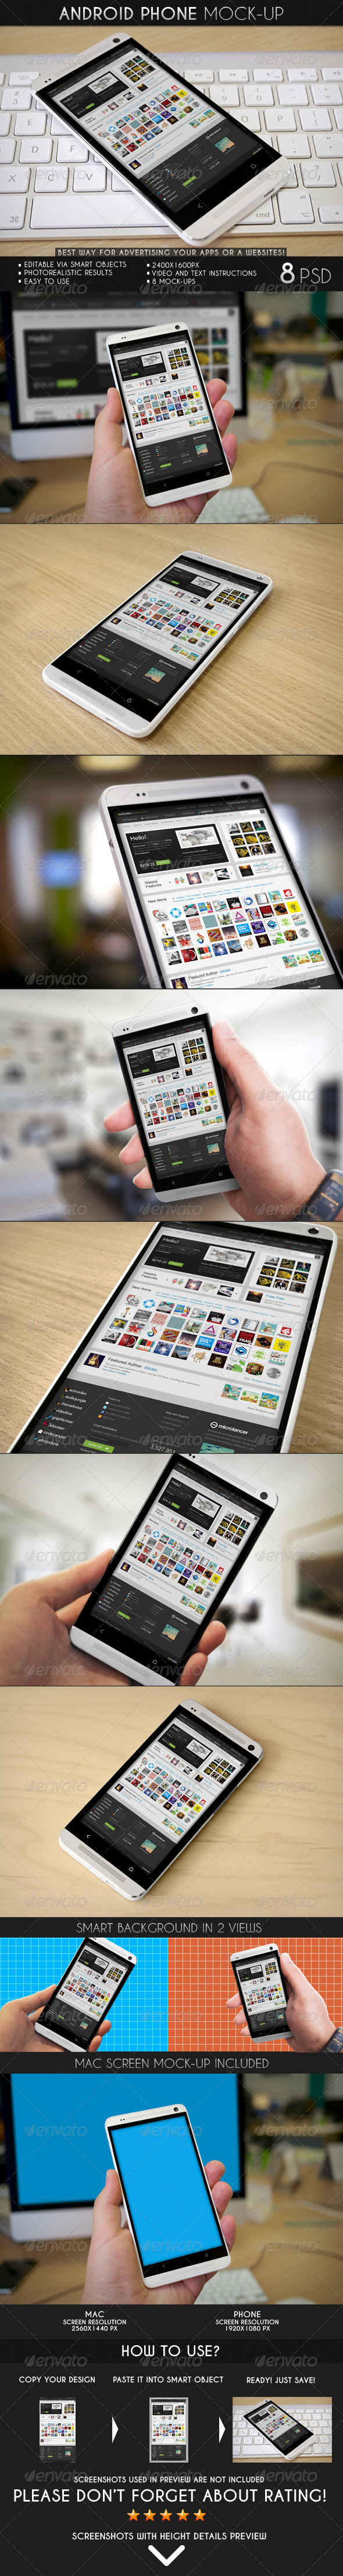 GraphicRiver Android Phone Mock-Up 7209703